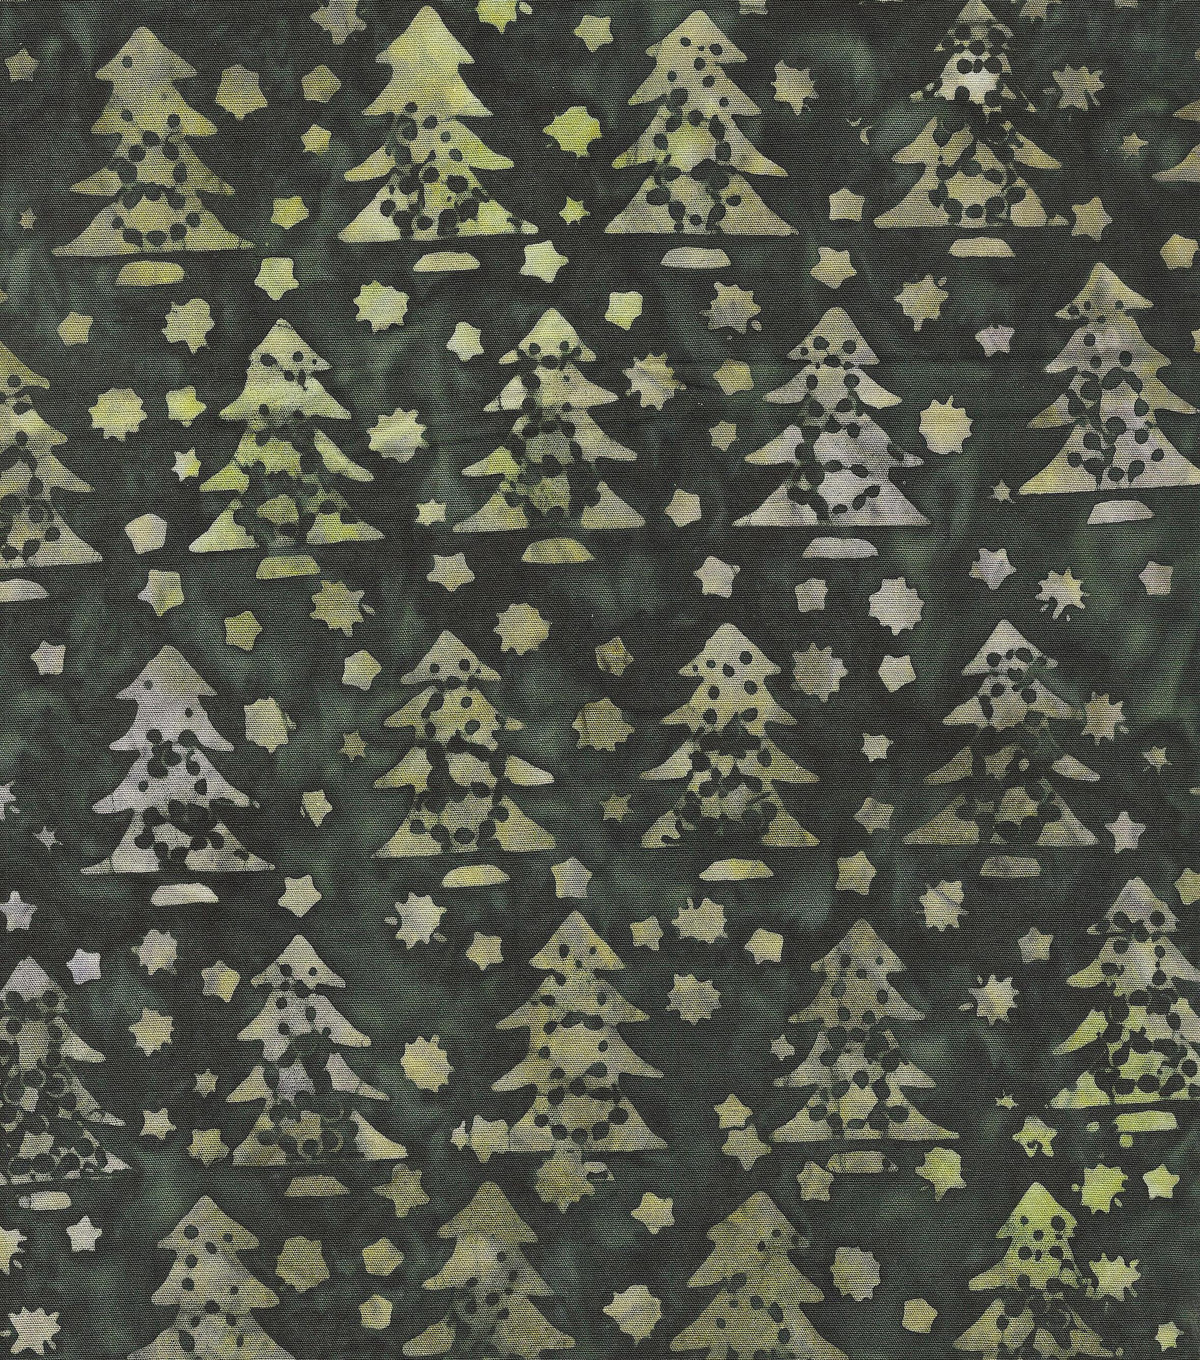 Maker's Holiday Cotton Print Batik Fabric 44''-Green Pine Trees